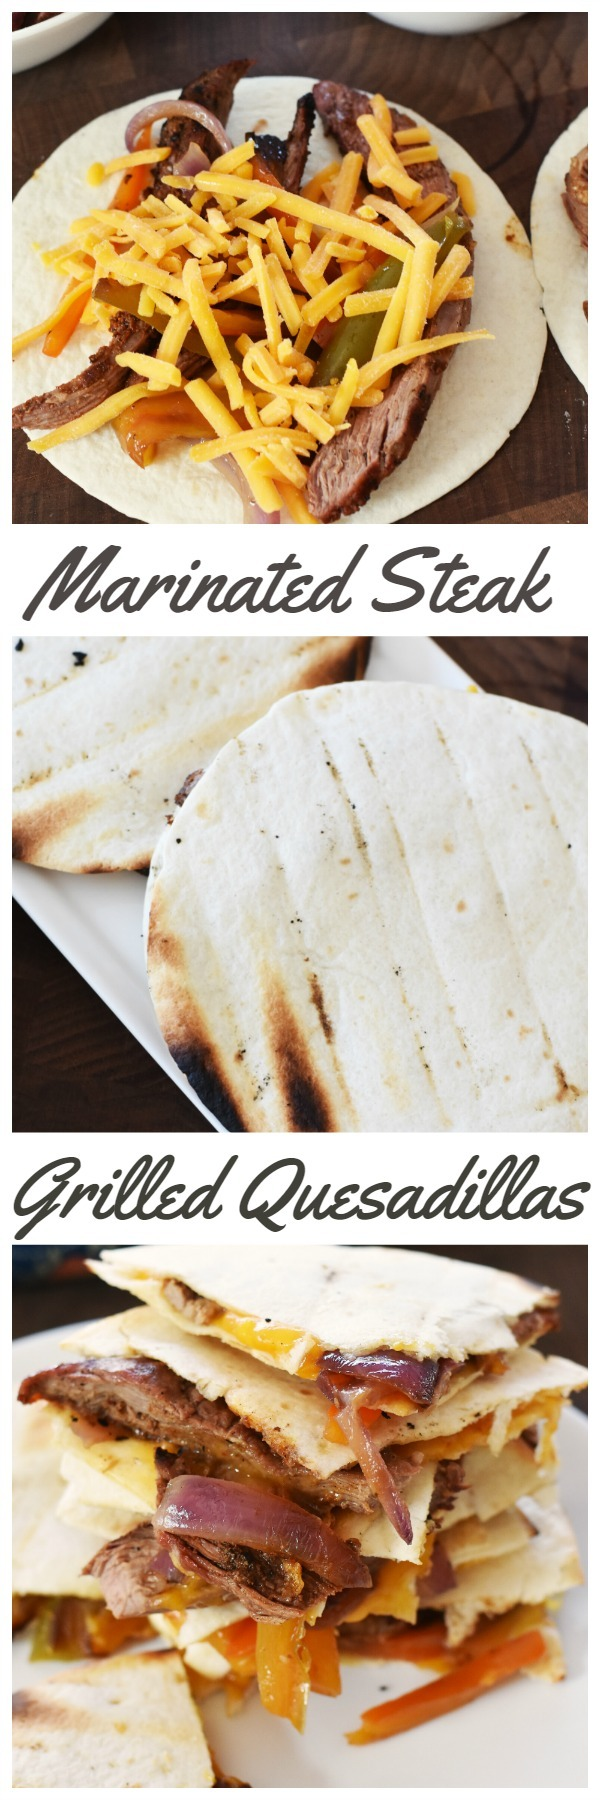 Marinated Steak Grilled Quesadillas